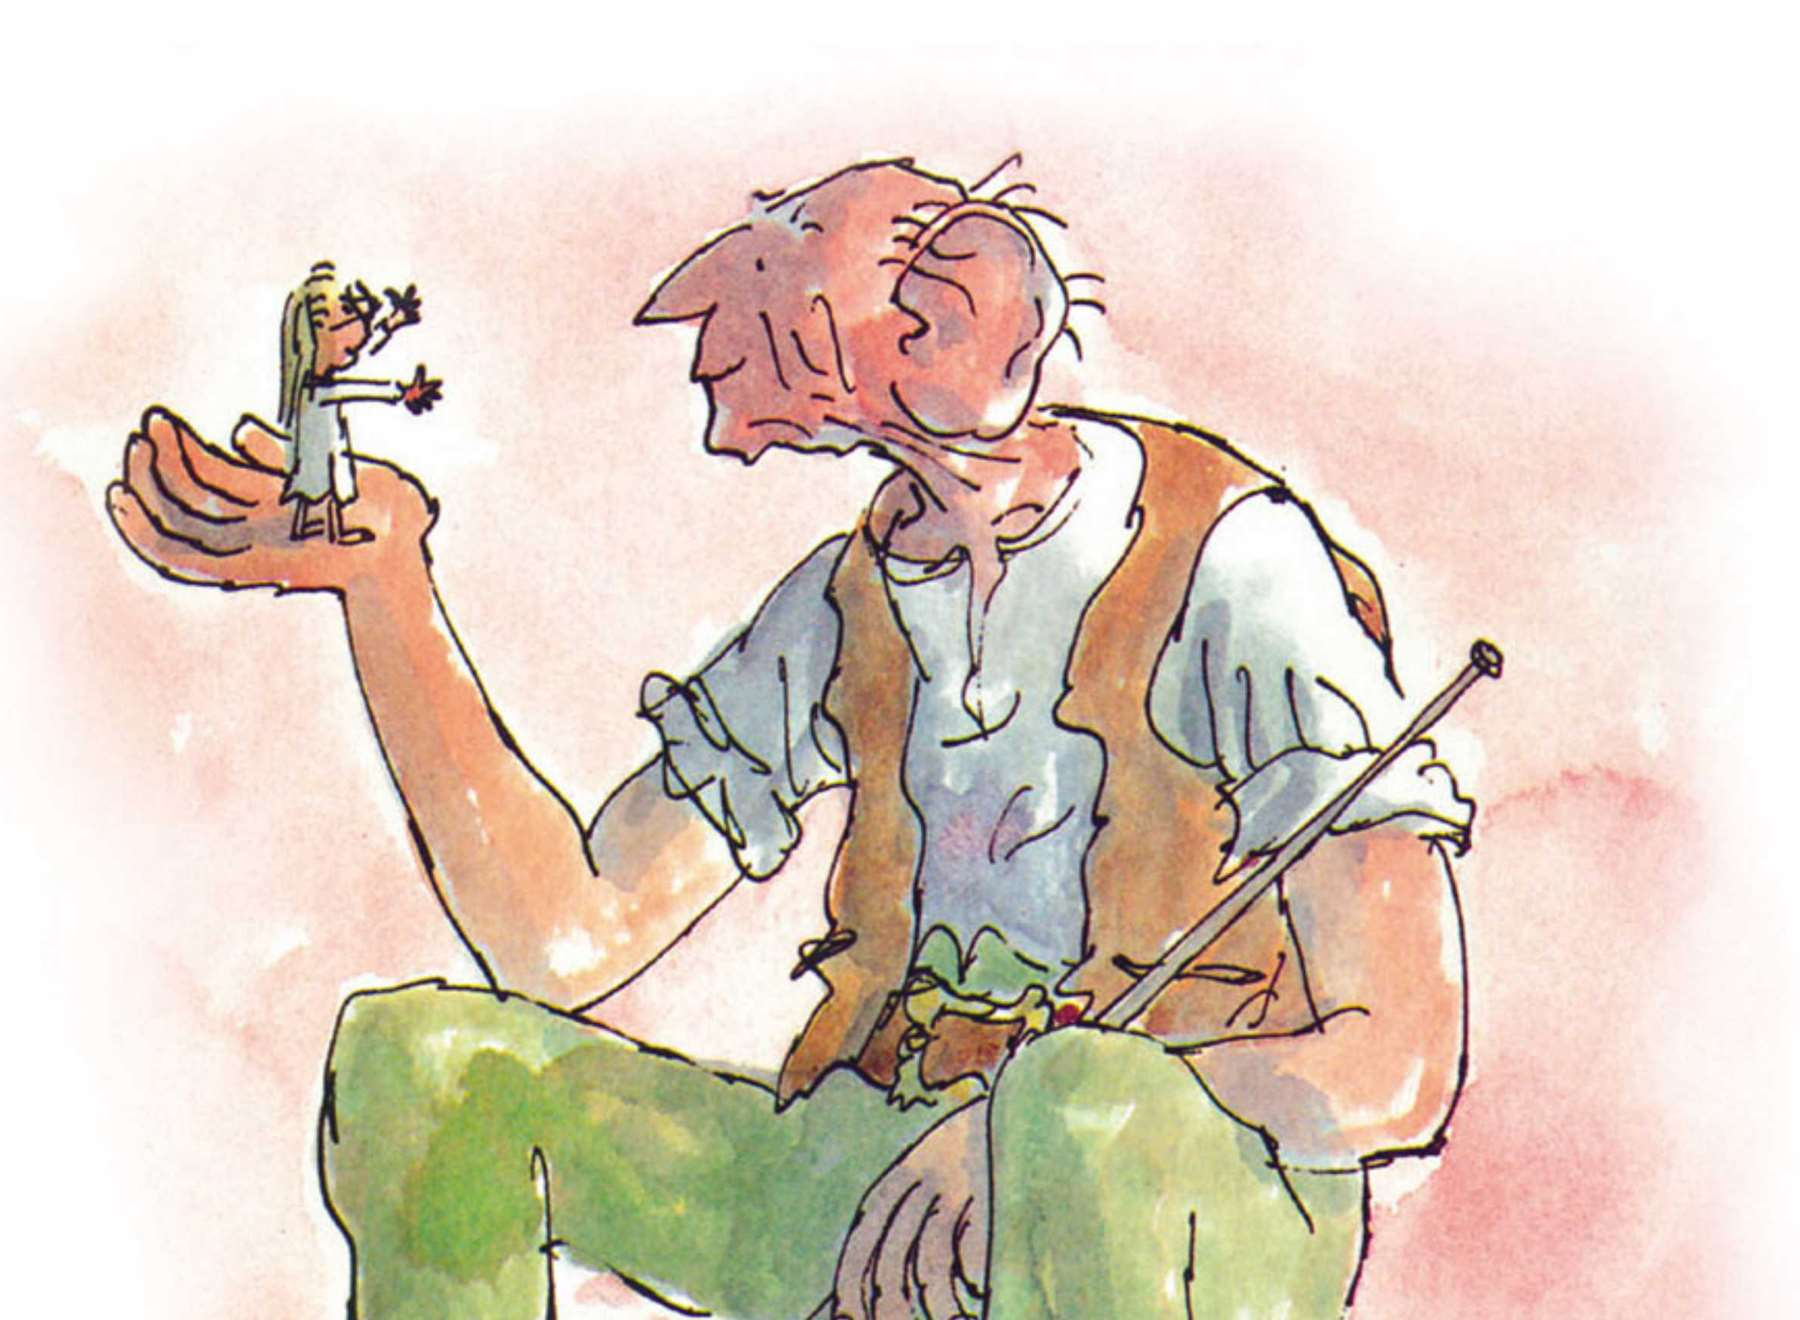 The BFG - Big Friendly Giant, one of Roald Dahl's much-loved stories